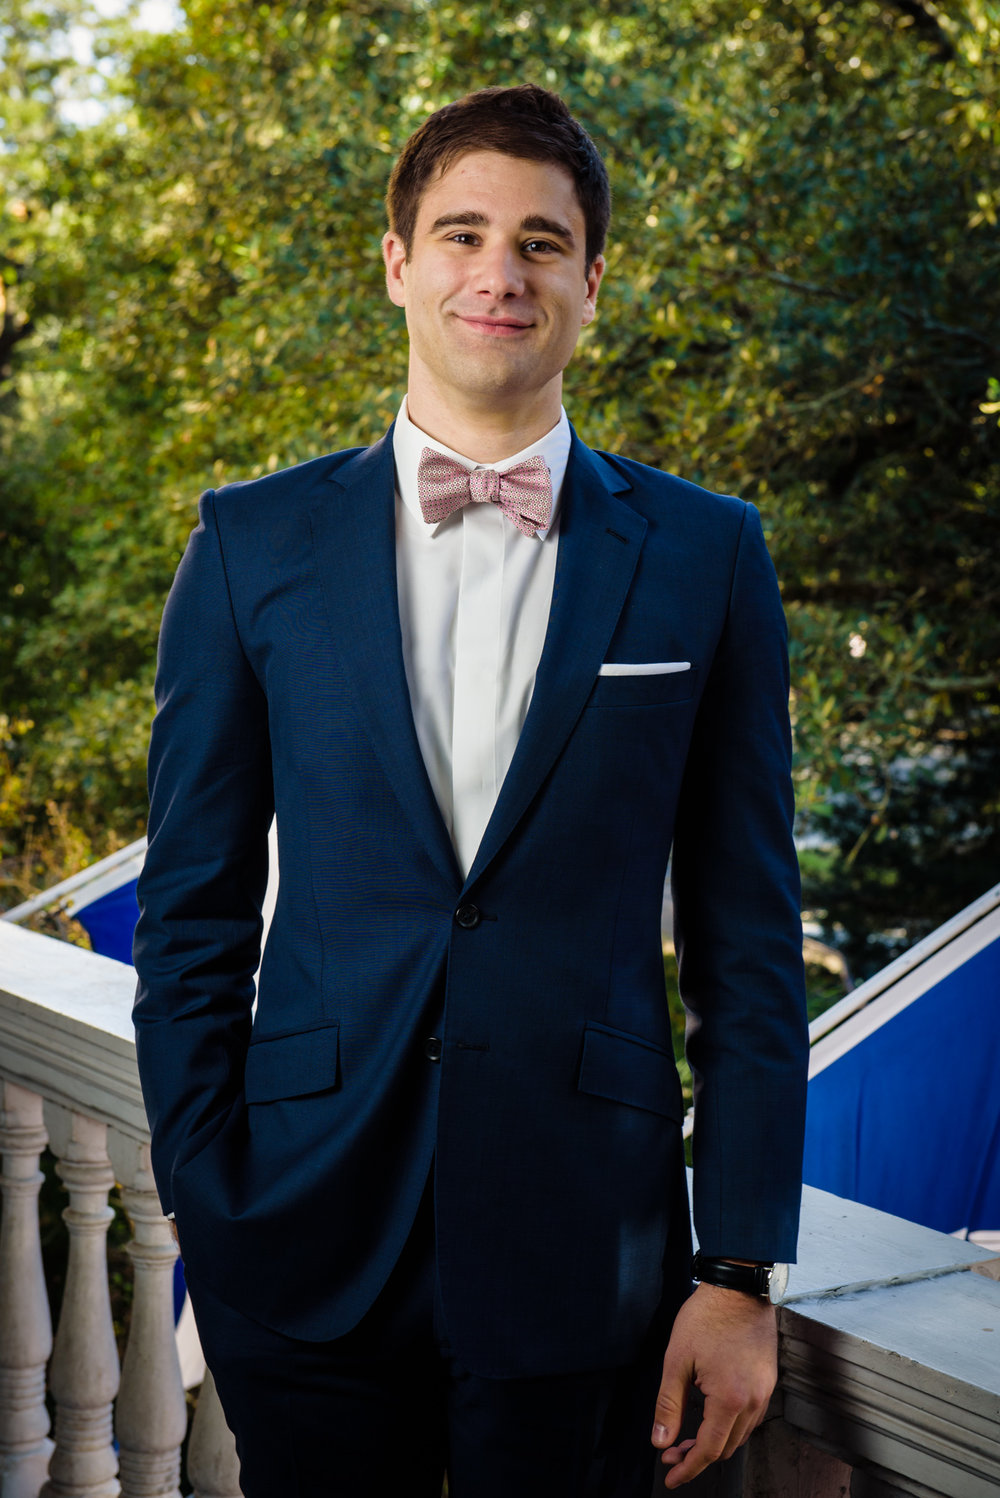 Groom's portrait at the Columns Hotel, New Orleans